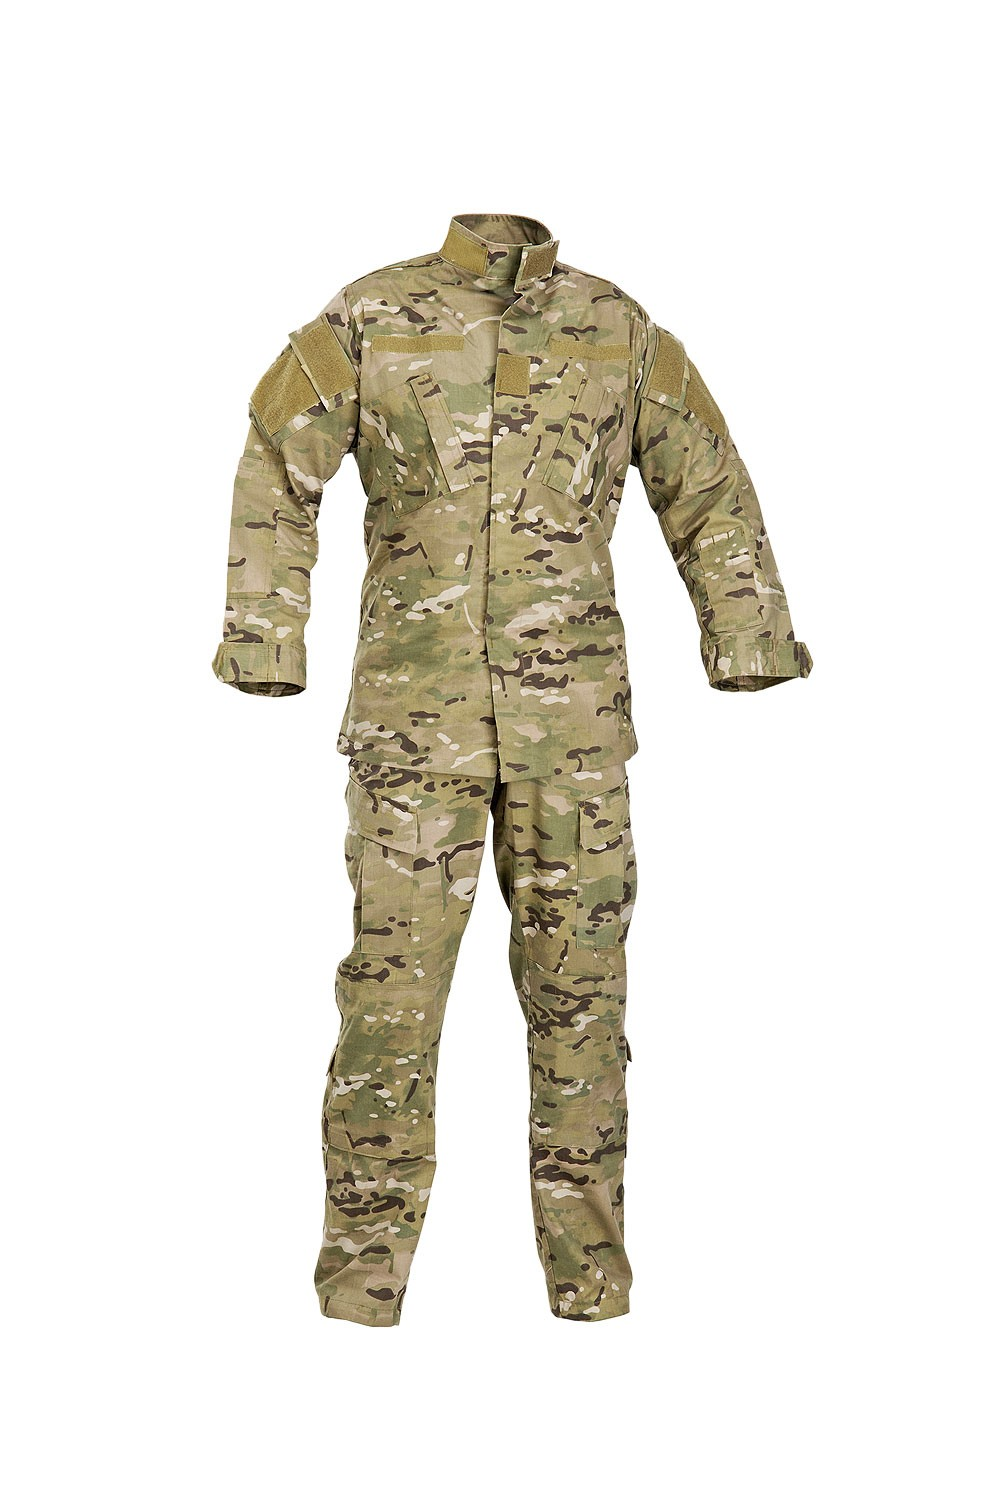 LANDING FORCE COMBAT UNIFORM